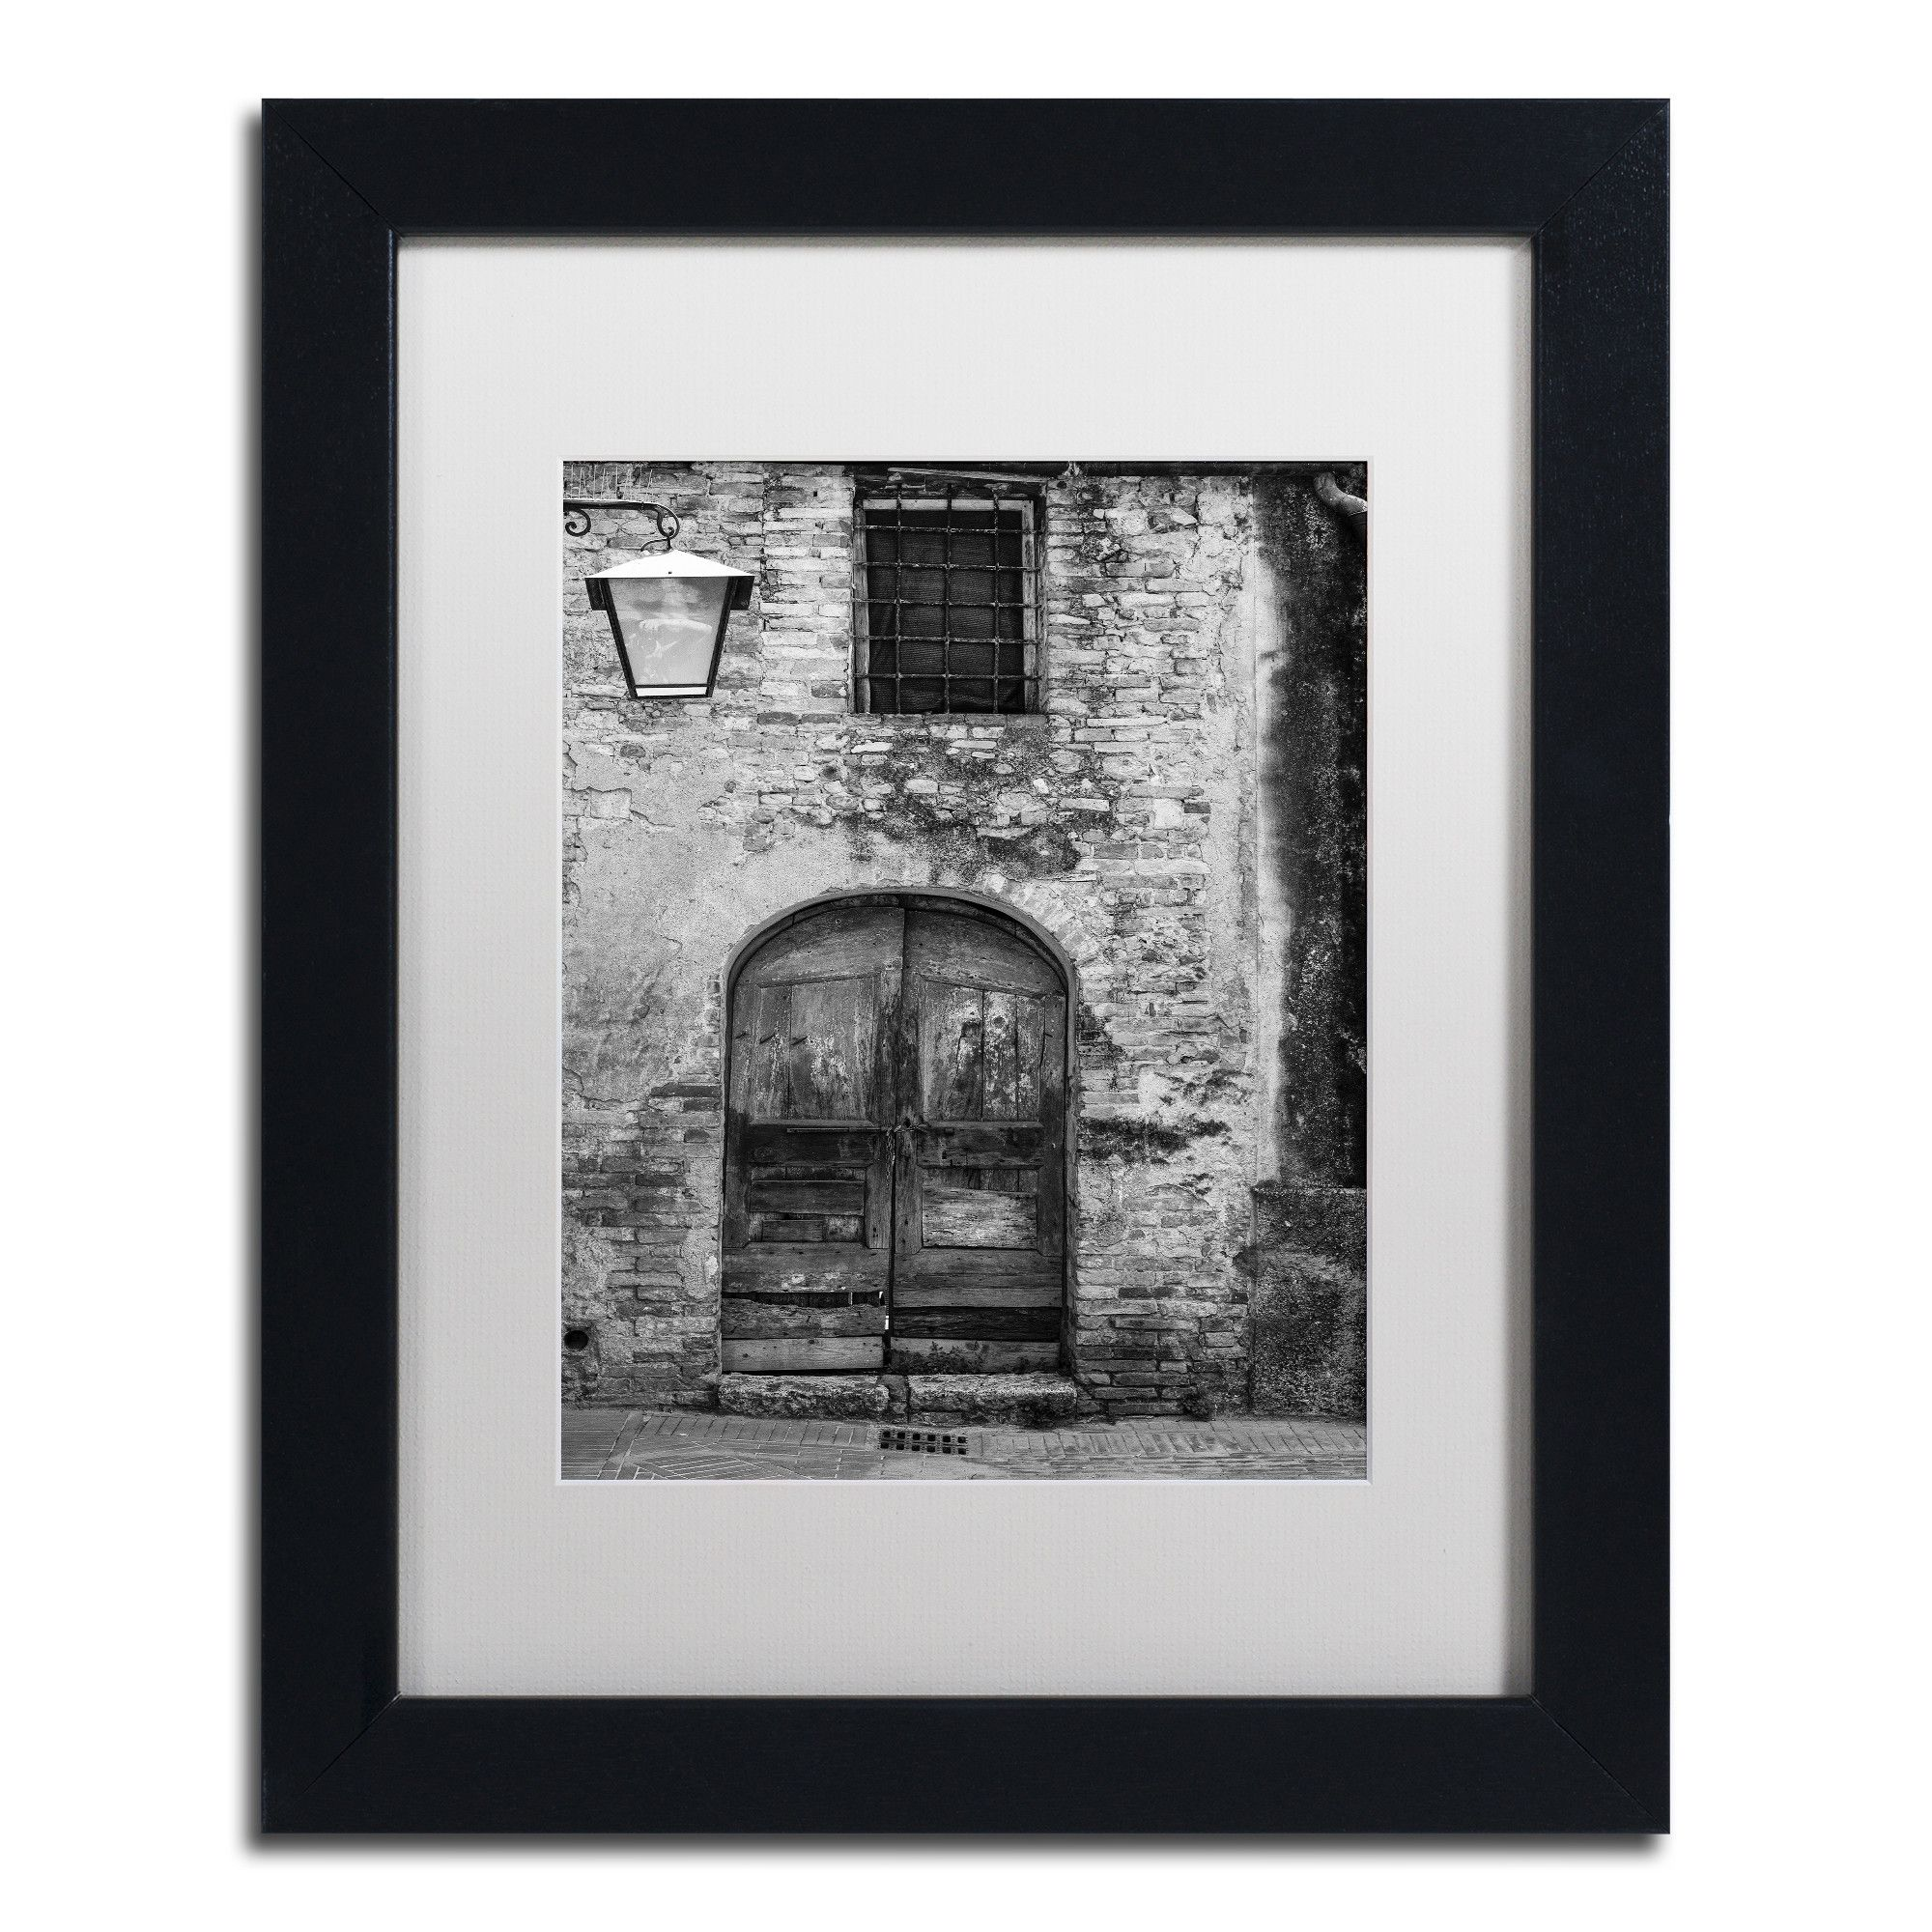 San gimignano door by moises levy framed photographic print in white